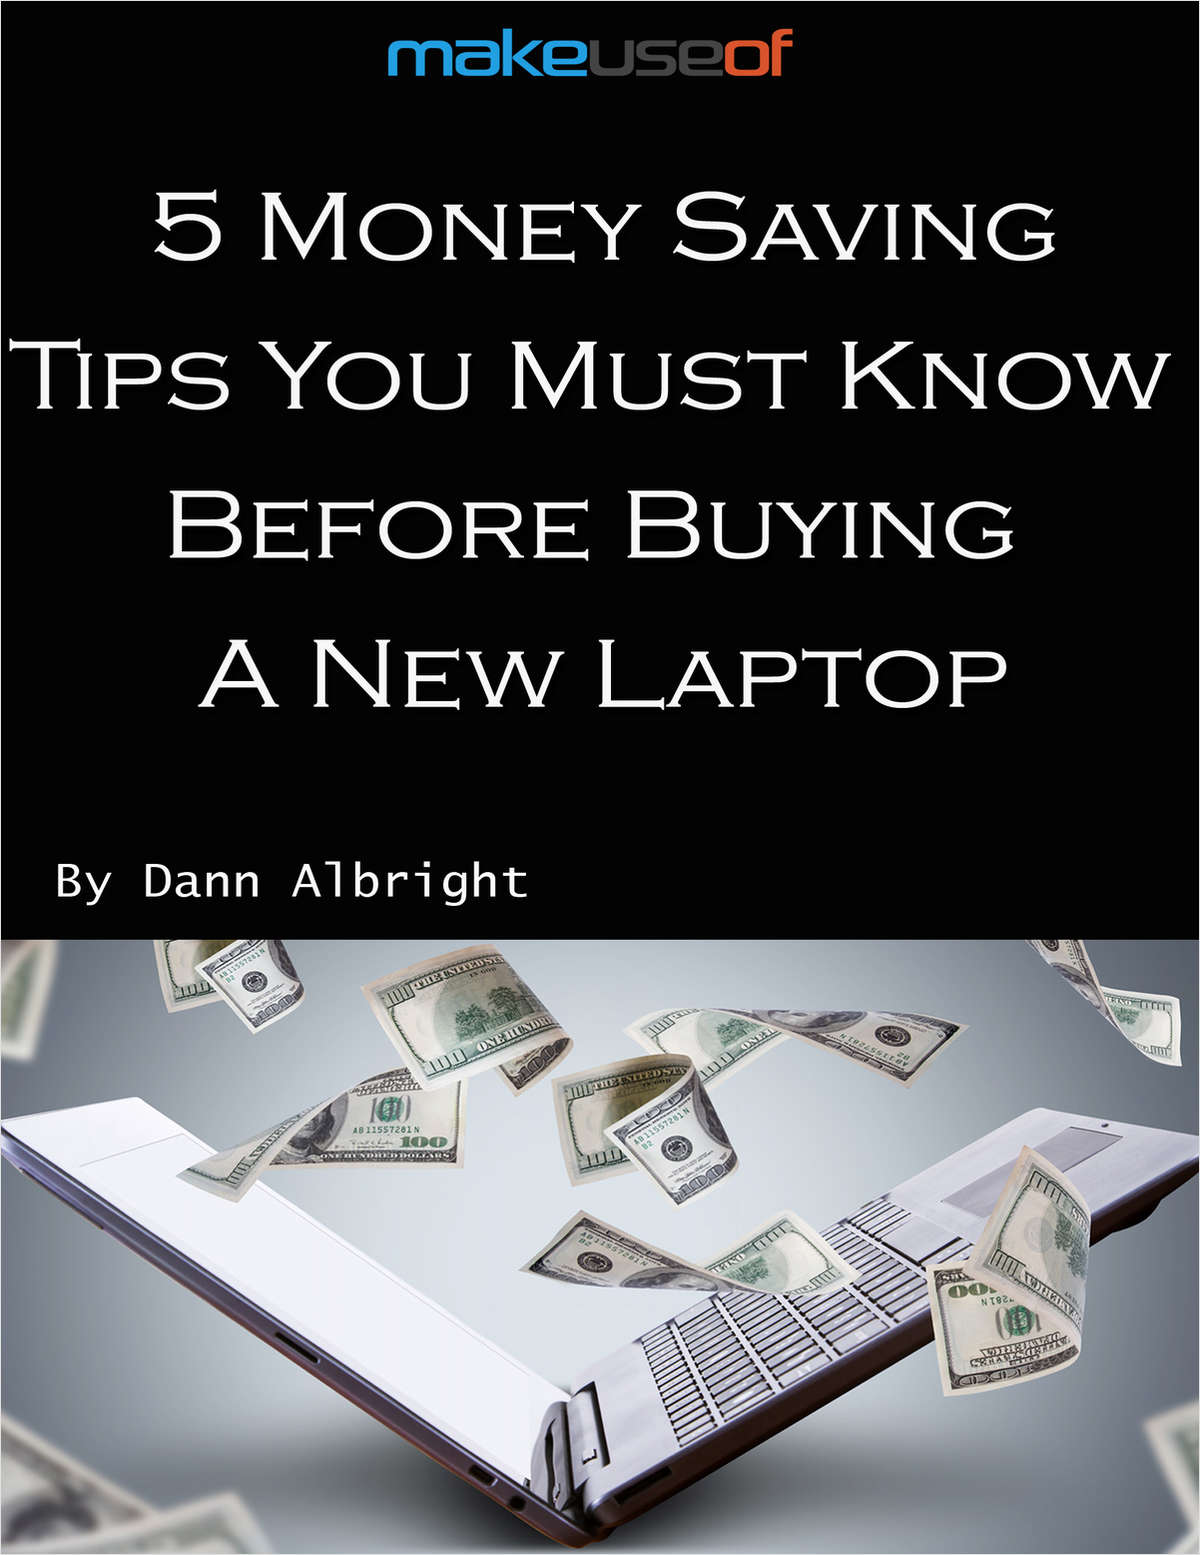 5 Money-Saving Tips You Must Know Before Buying a New Laptop